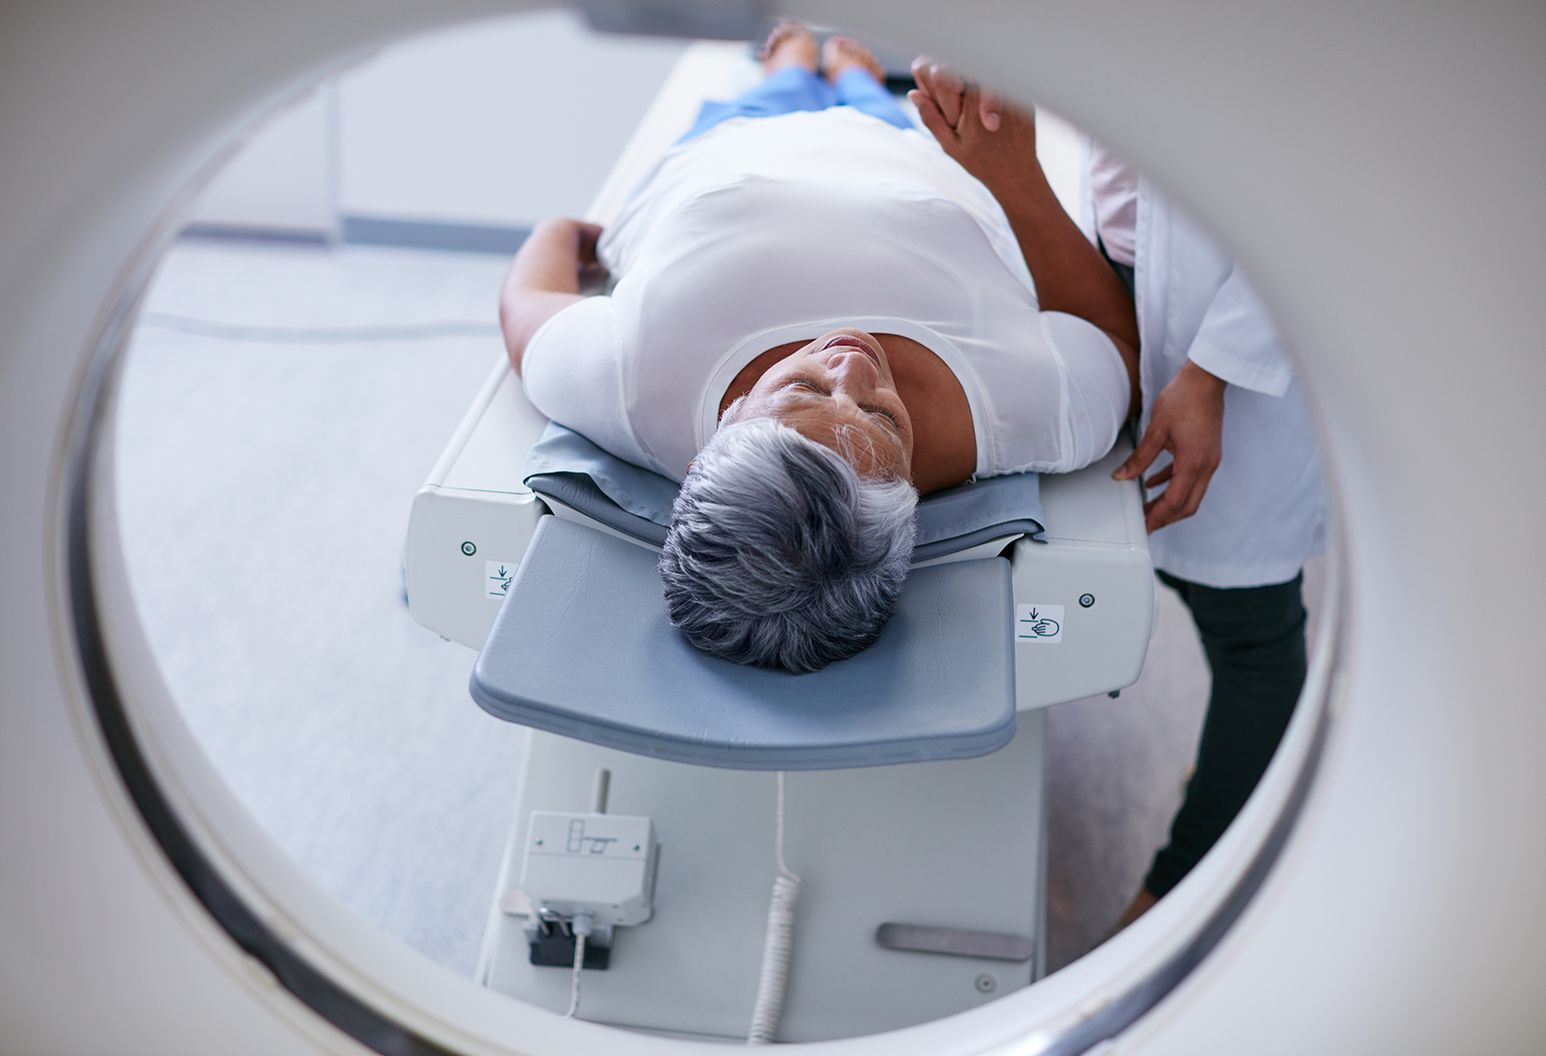 Woman with short gray hair on scan machine being comforted by a doctor